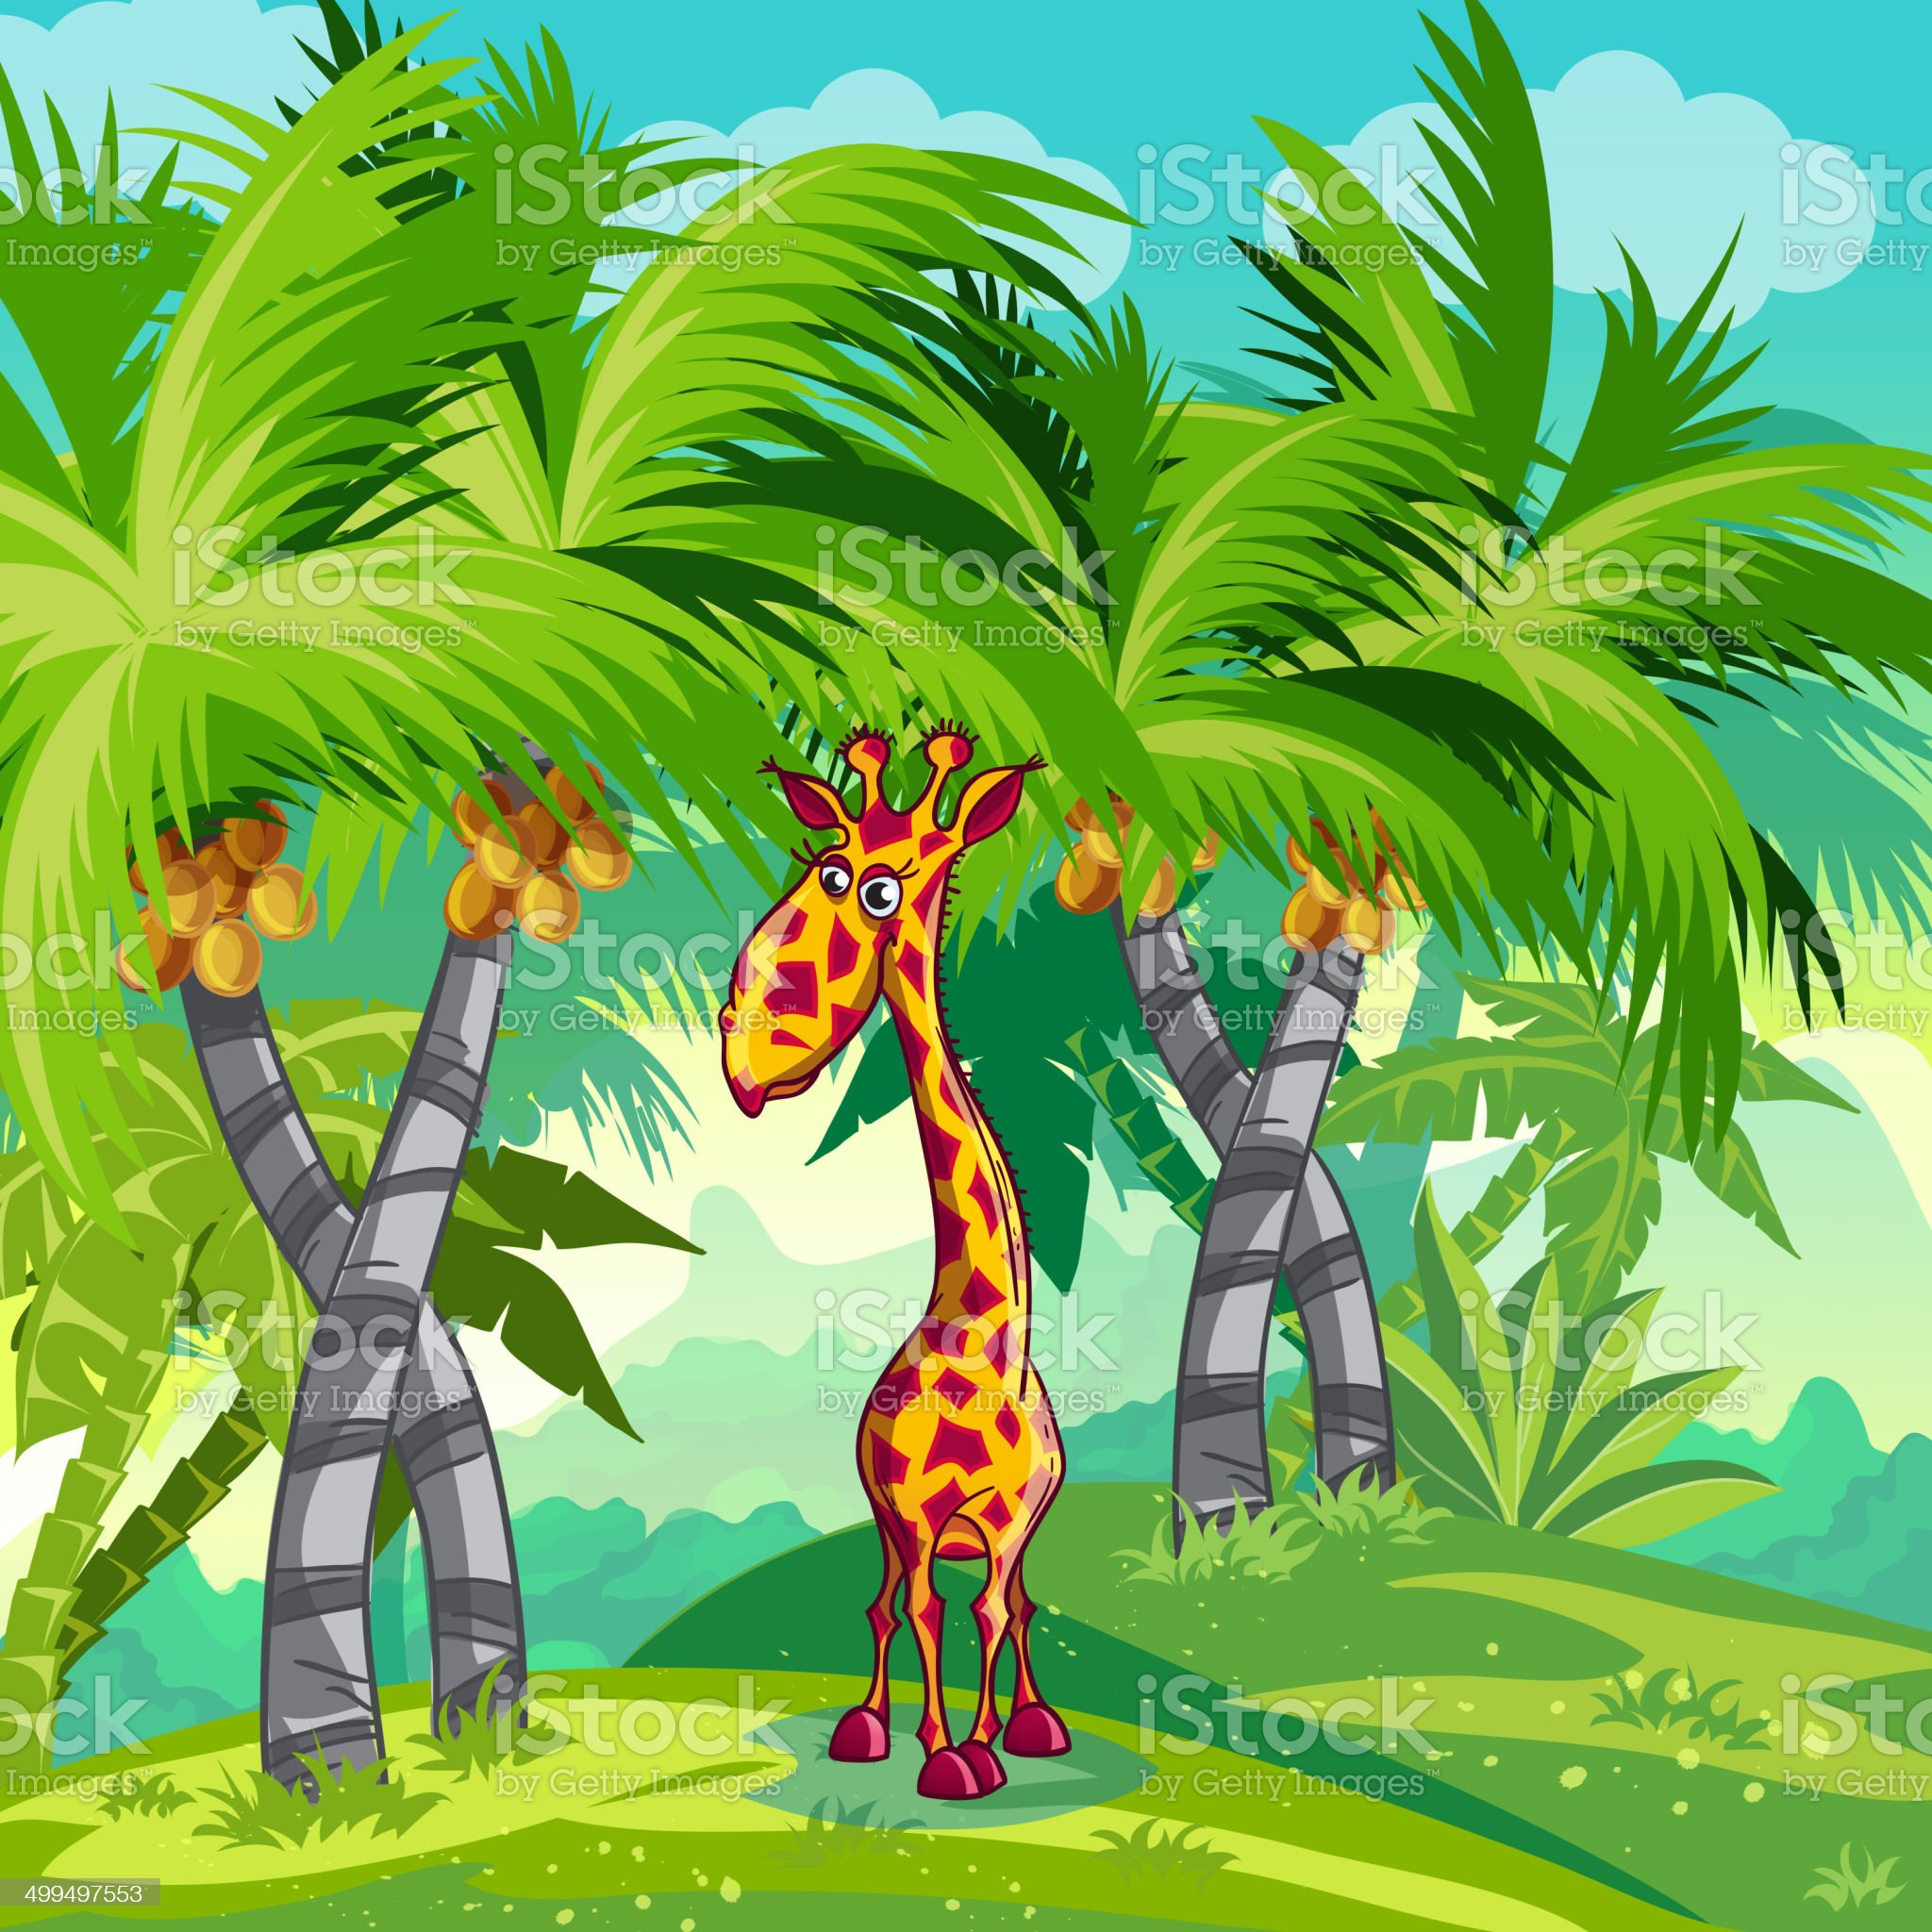 Children's illustration of the jungle with a giraffe royalty-free stock vector art